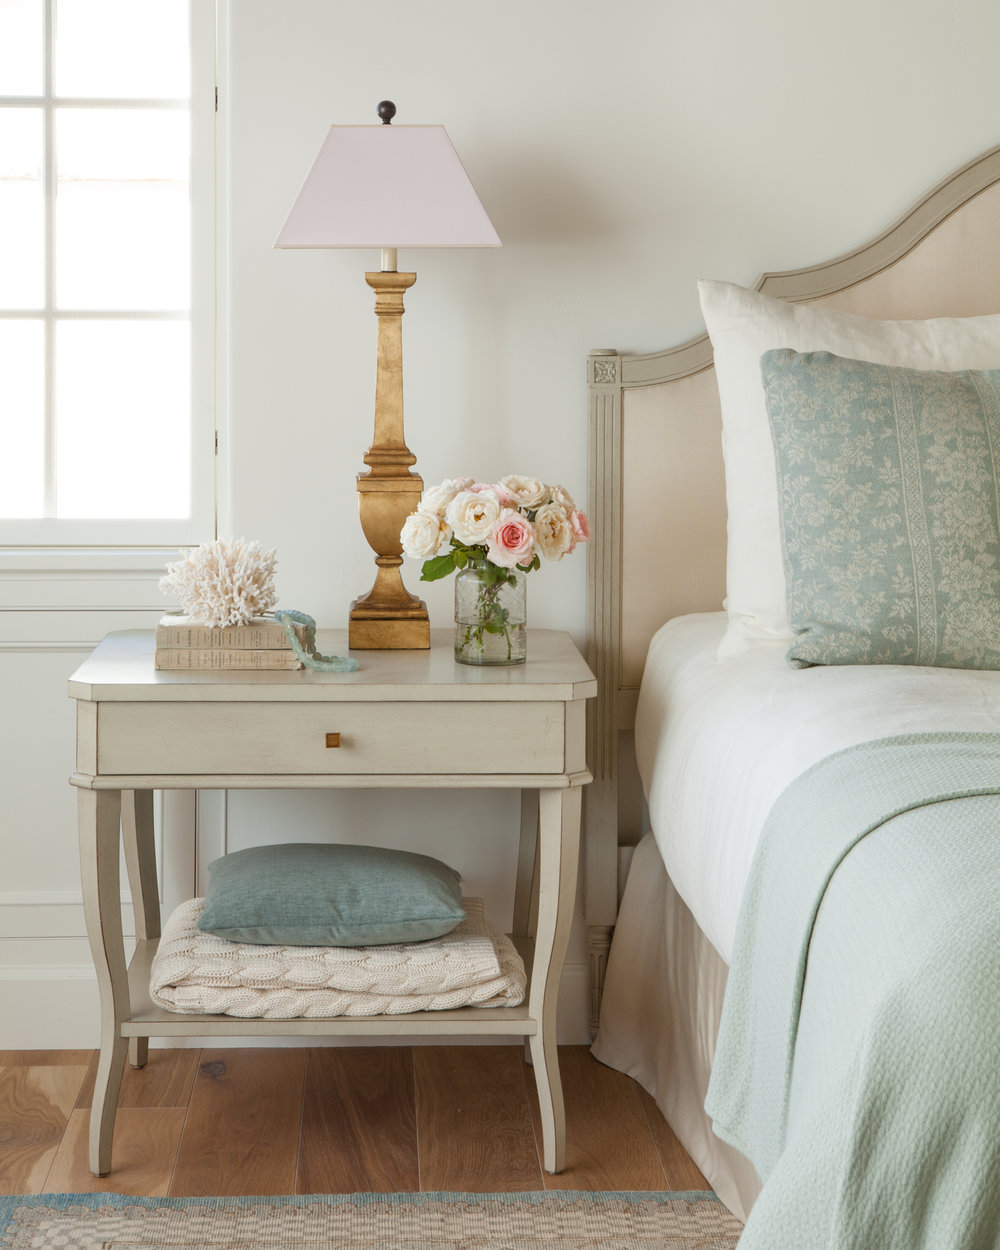 Tranquil and serene beauty in a bedroom with linen, aqua, and romantic decor by Giannetti Home. #aqua #romanticbedroom #modernfarmhouse Photo: Lisa Romerein